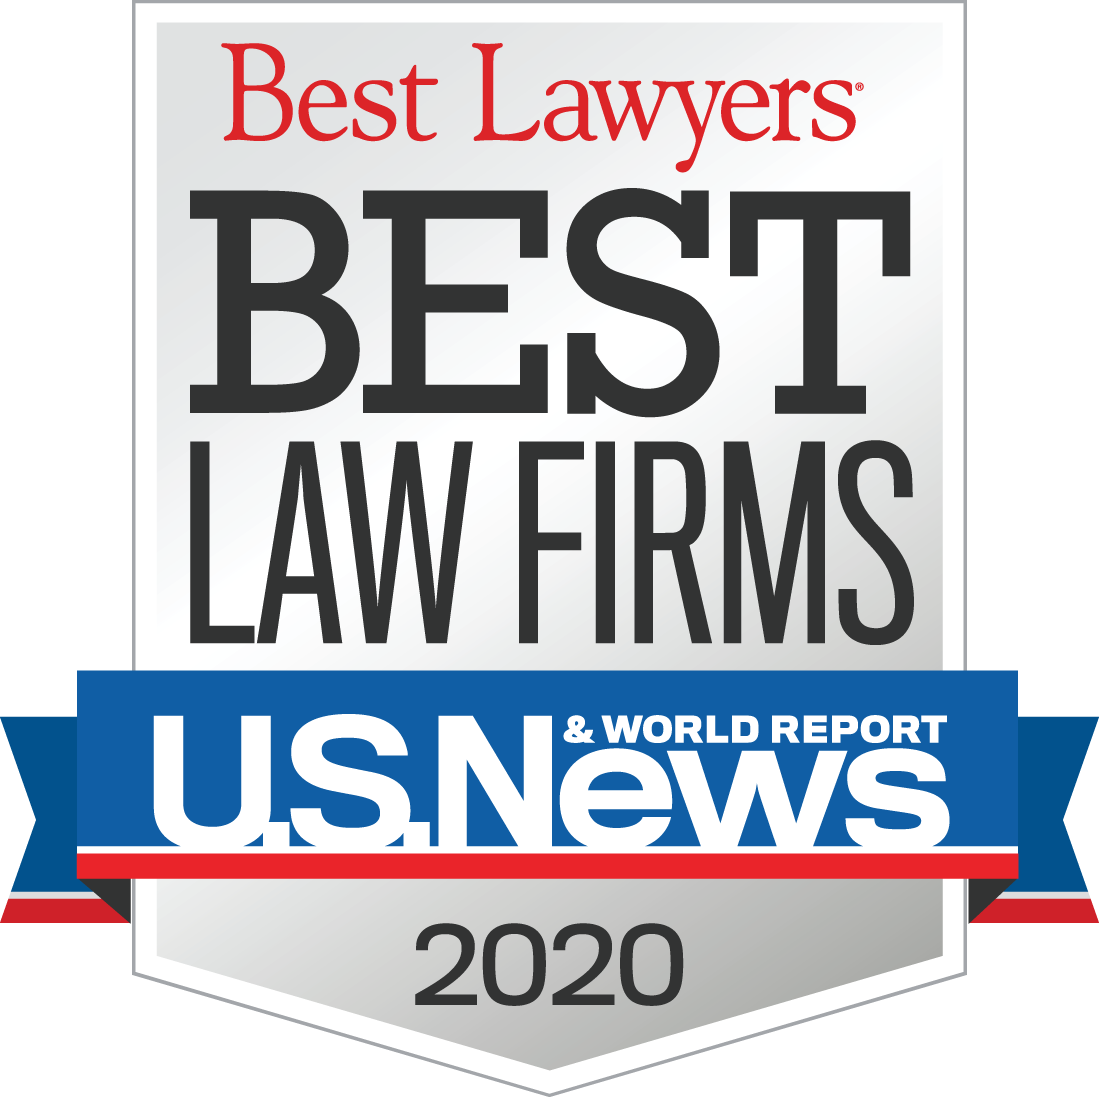 Best Law-firms-2020 Hite-Fanning-honeyman